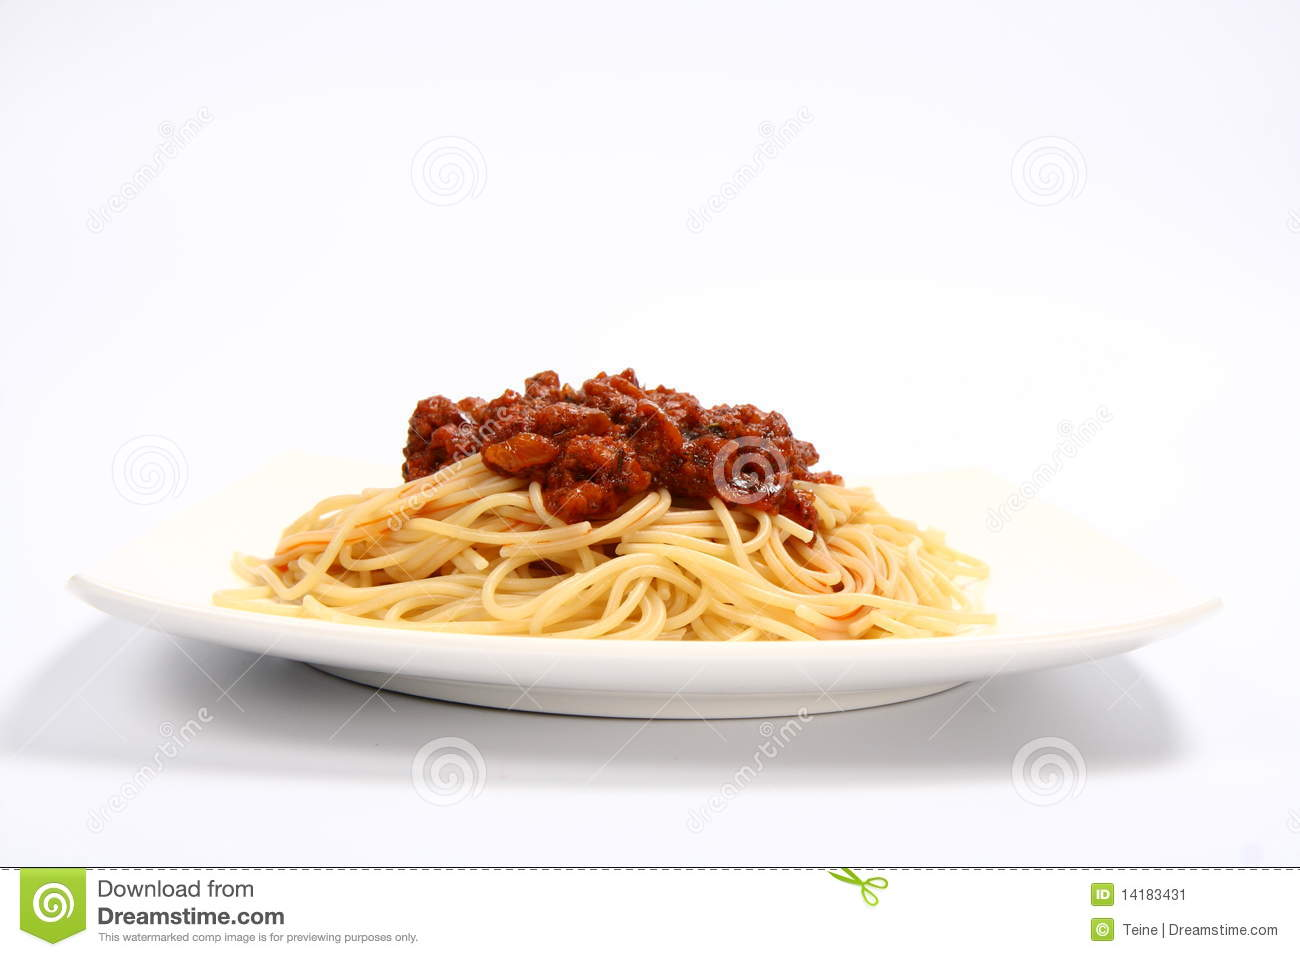 Pasta with bolognese sauce on a plate on white background.